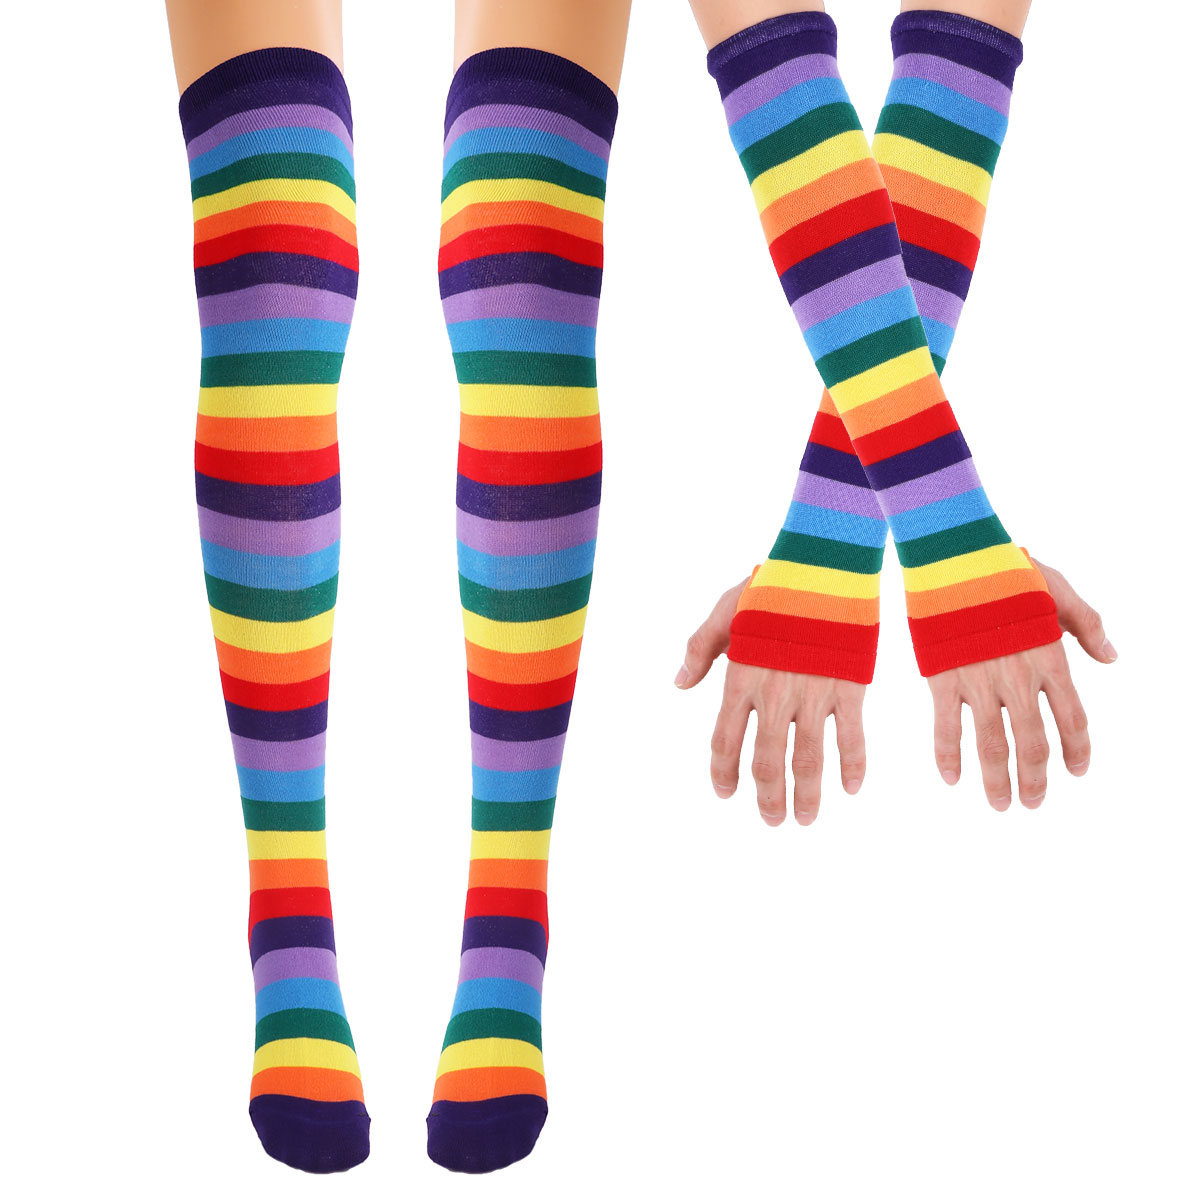 MSemis Colorful Rainbow Stockings Striped High Thigh Knee Socks Arm Warmer Gloves Halloween Costume Party Cosplay Holiday Gifts